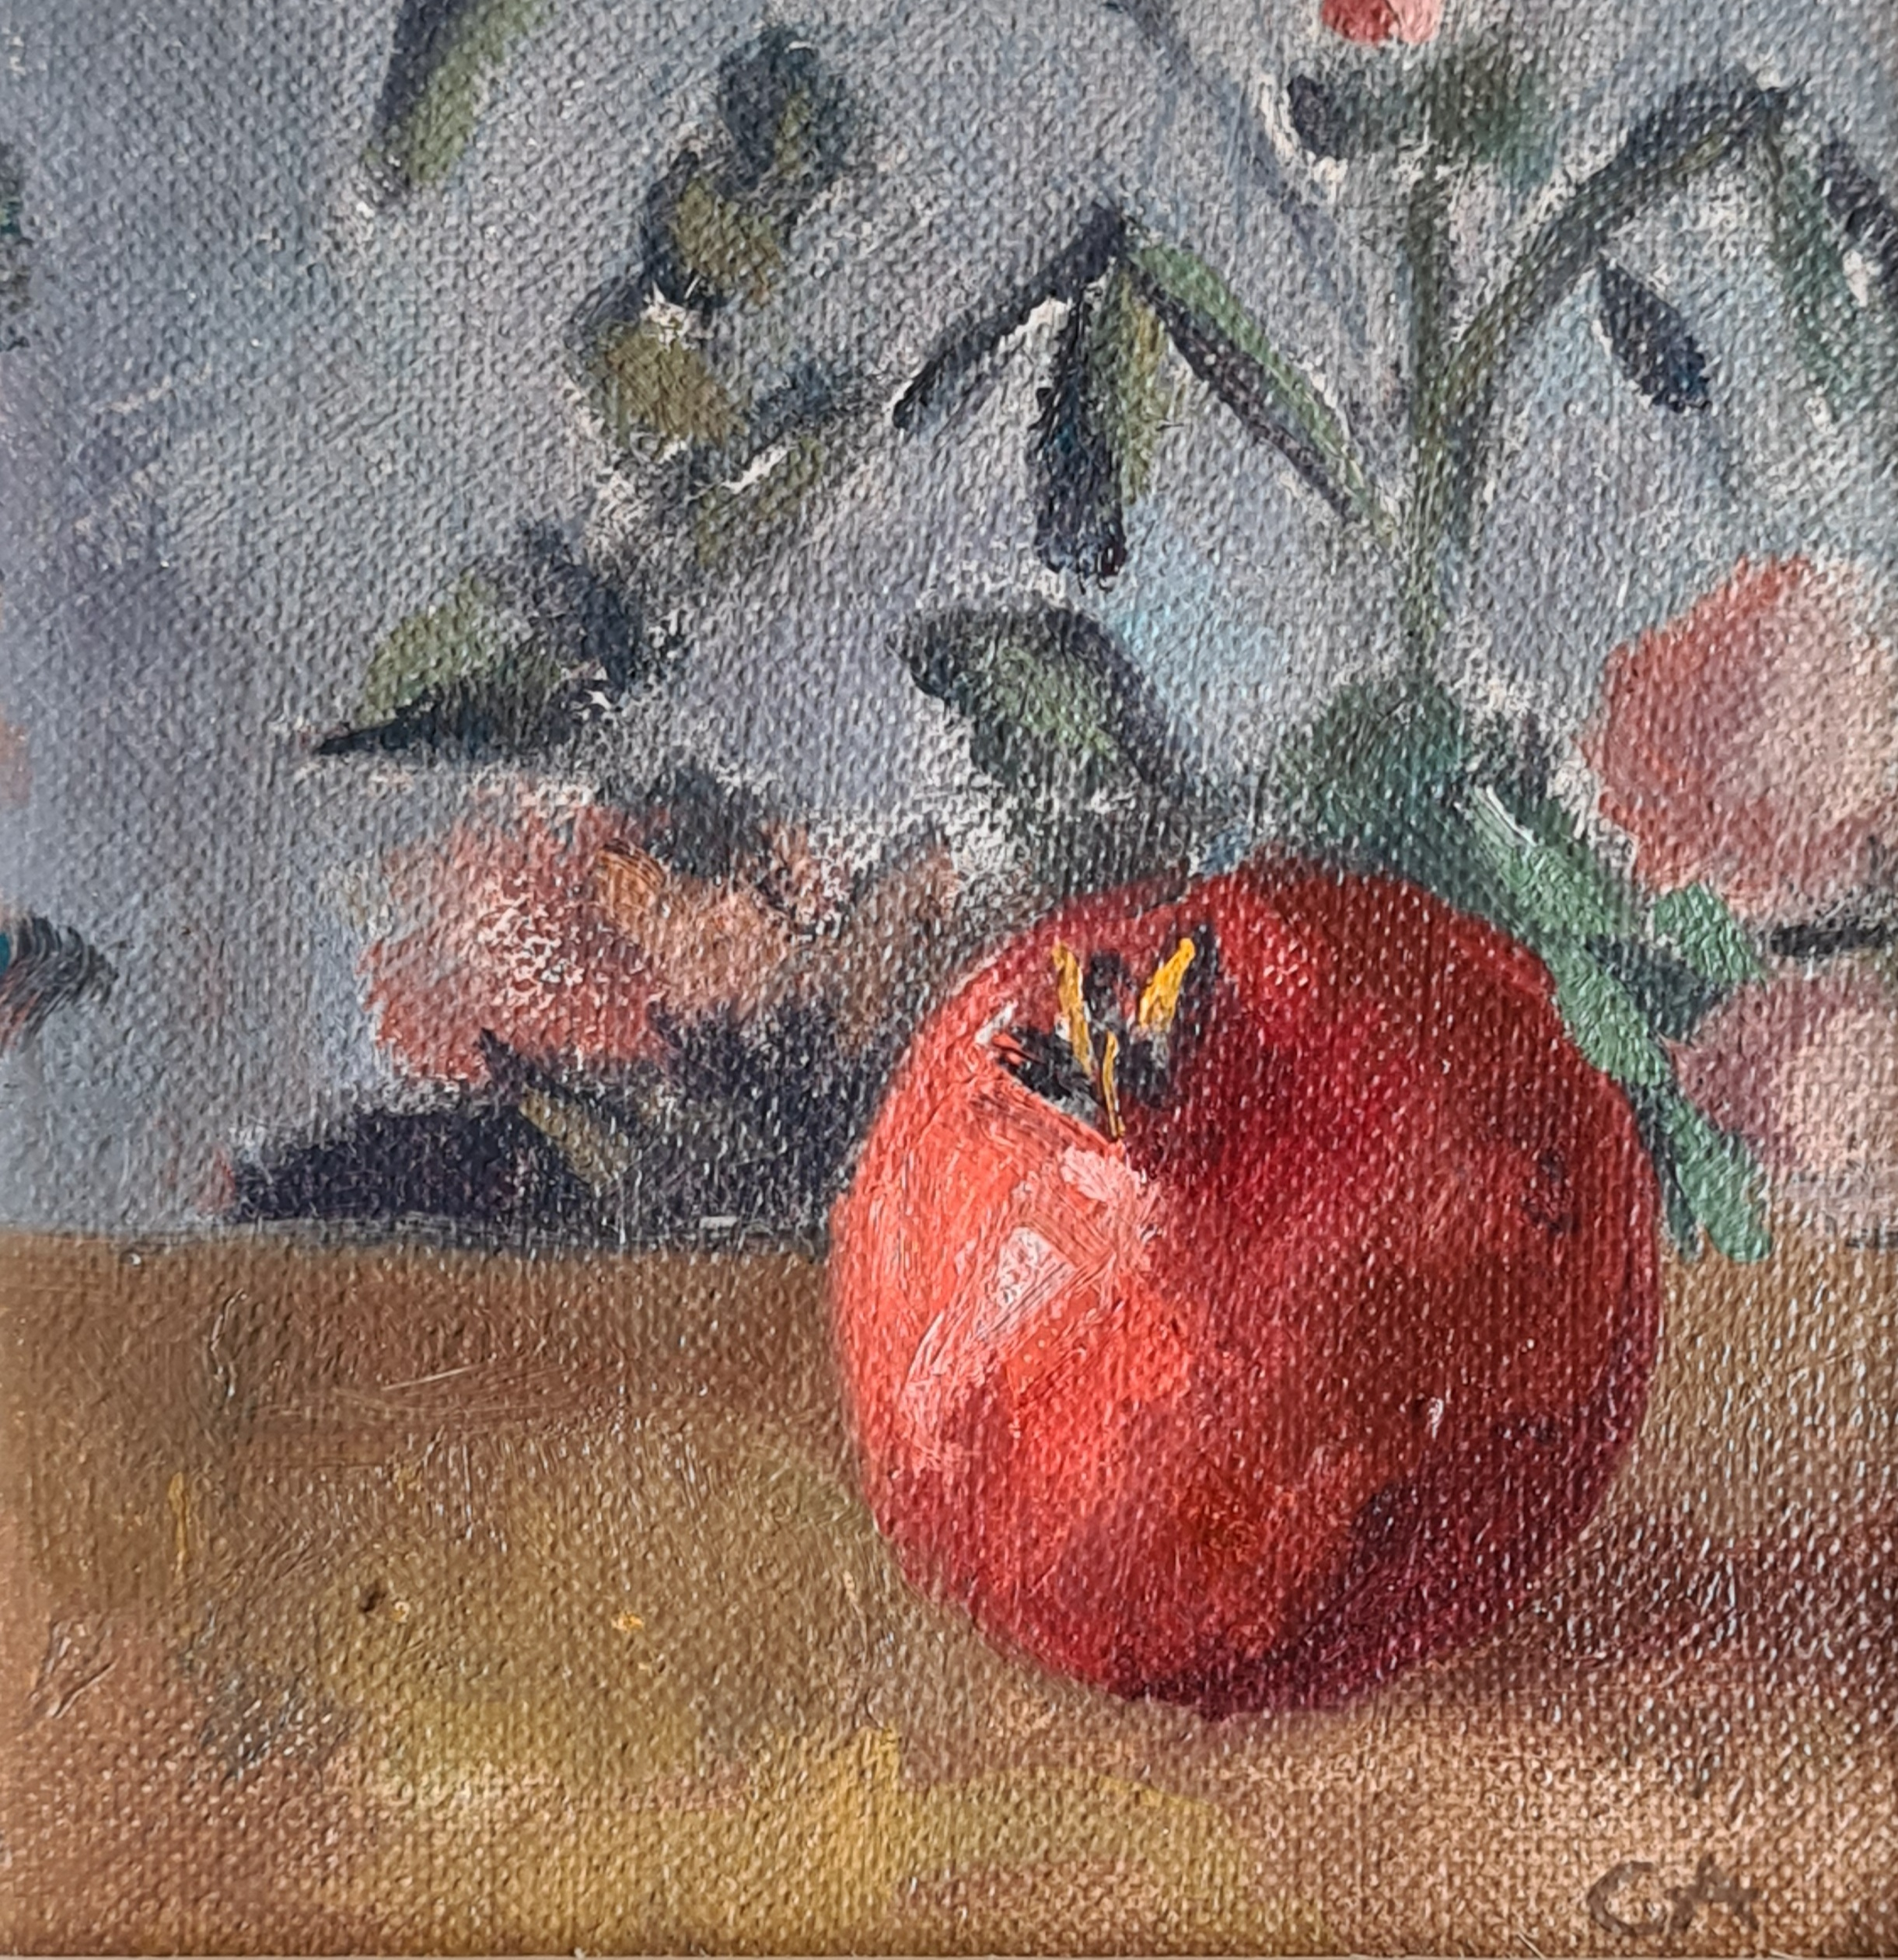 'Pomegranate with Wall Paper'